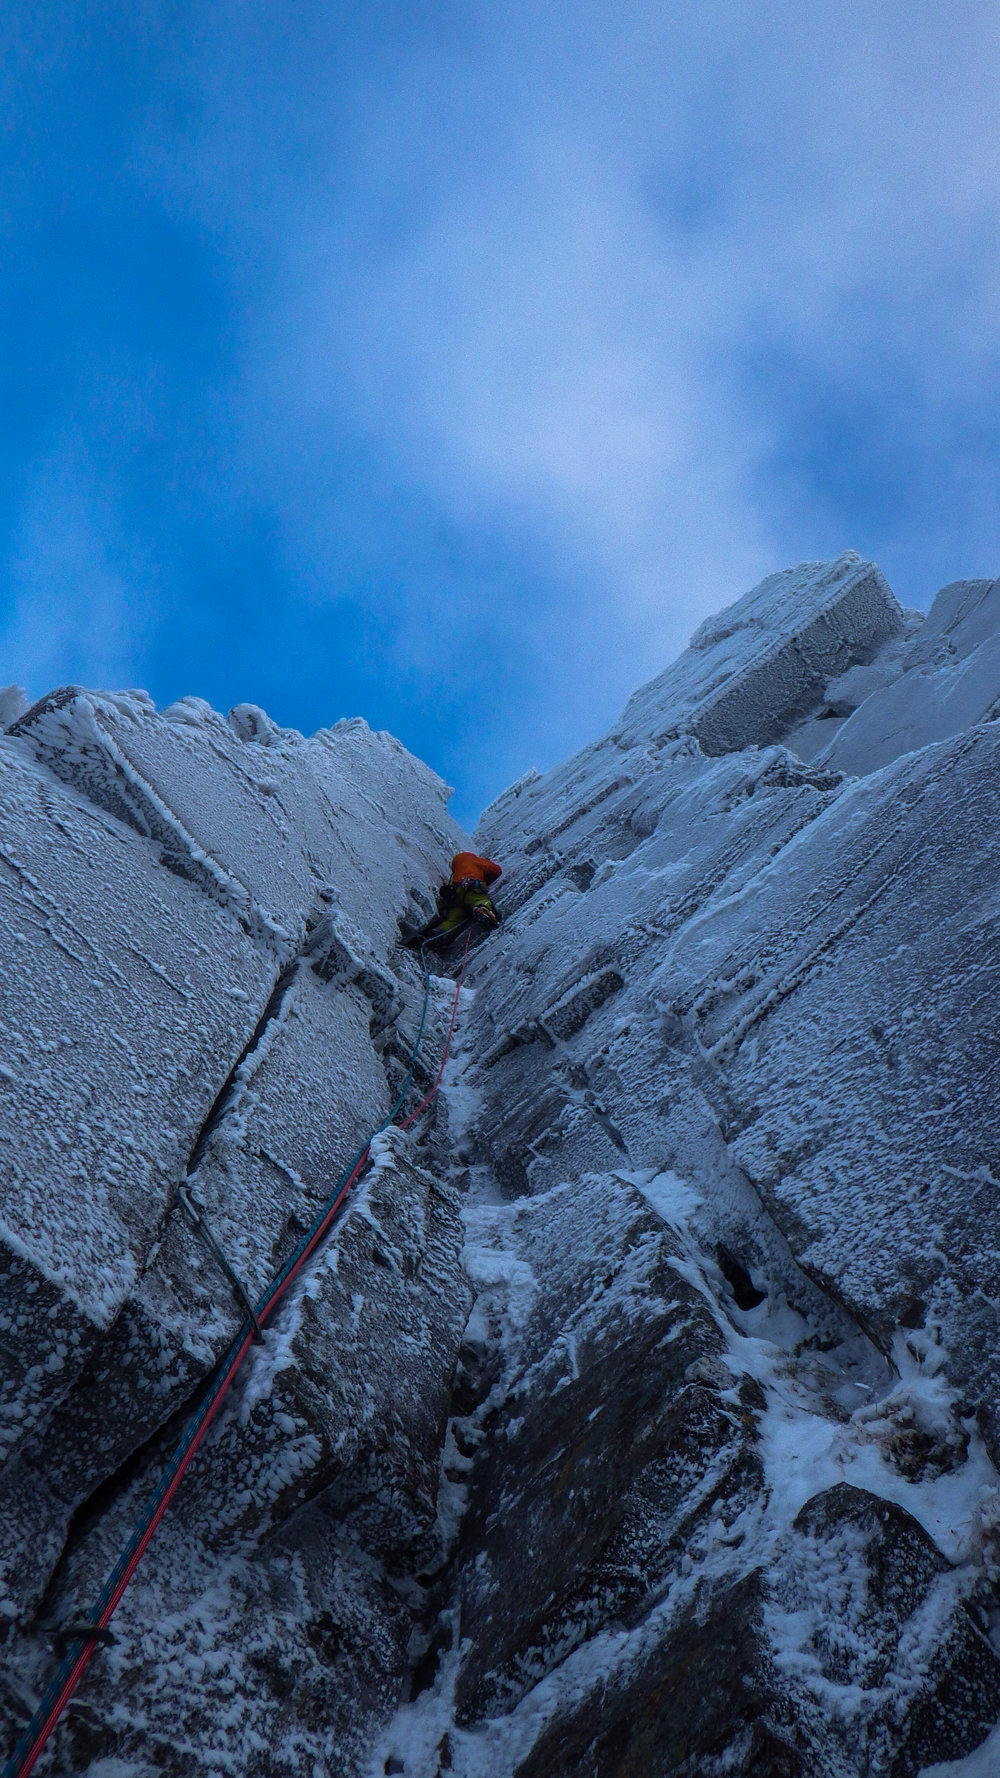 East Face Direct Direct (P4). Photo: Matija Volontar